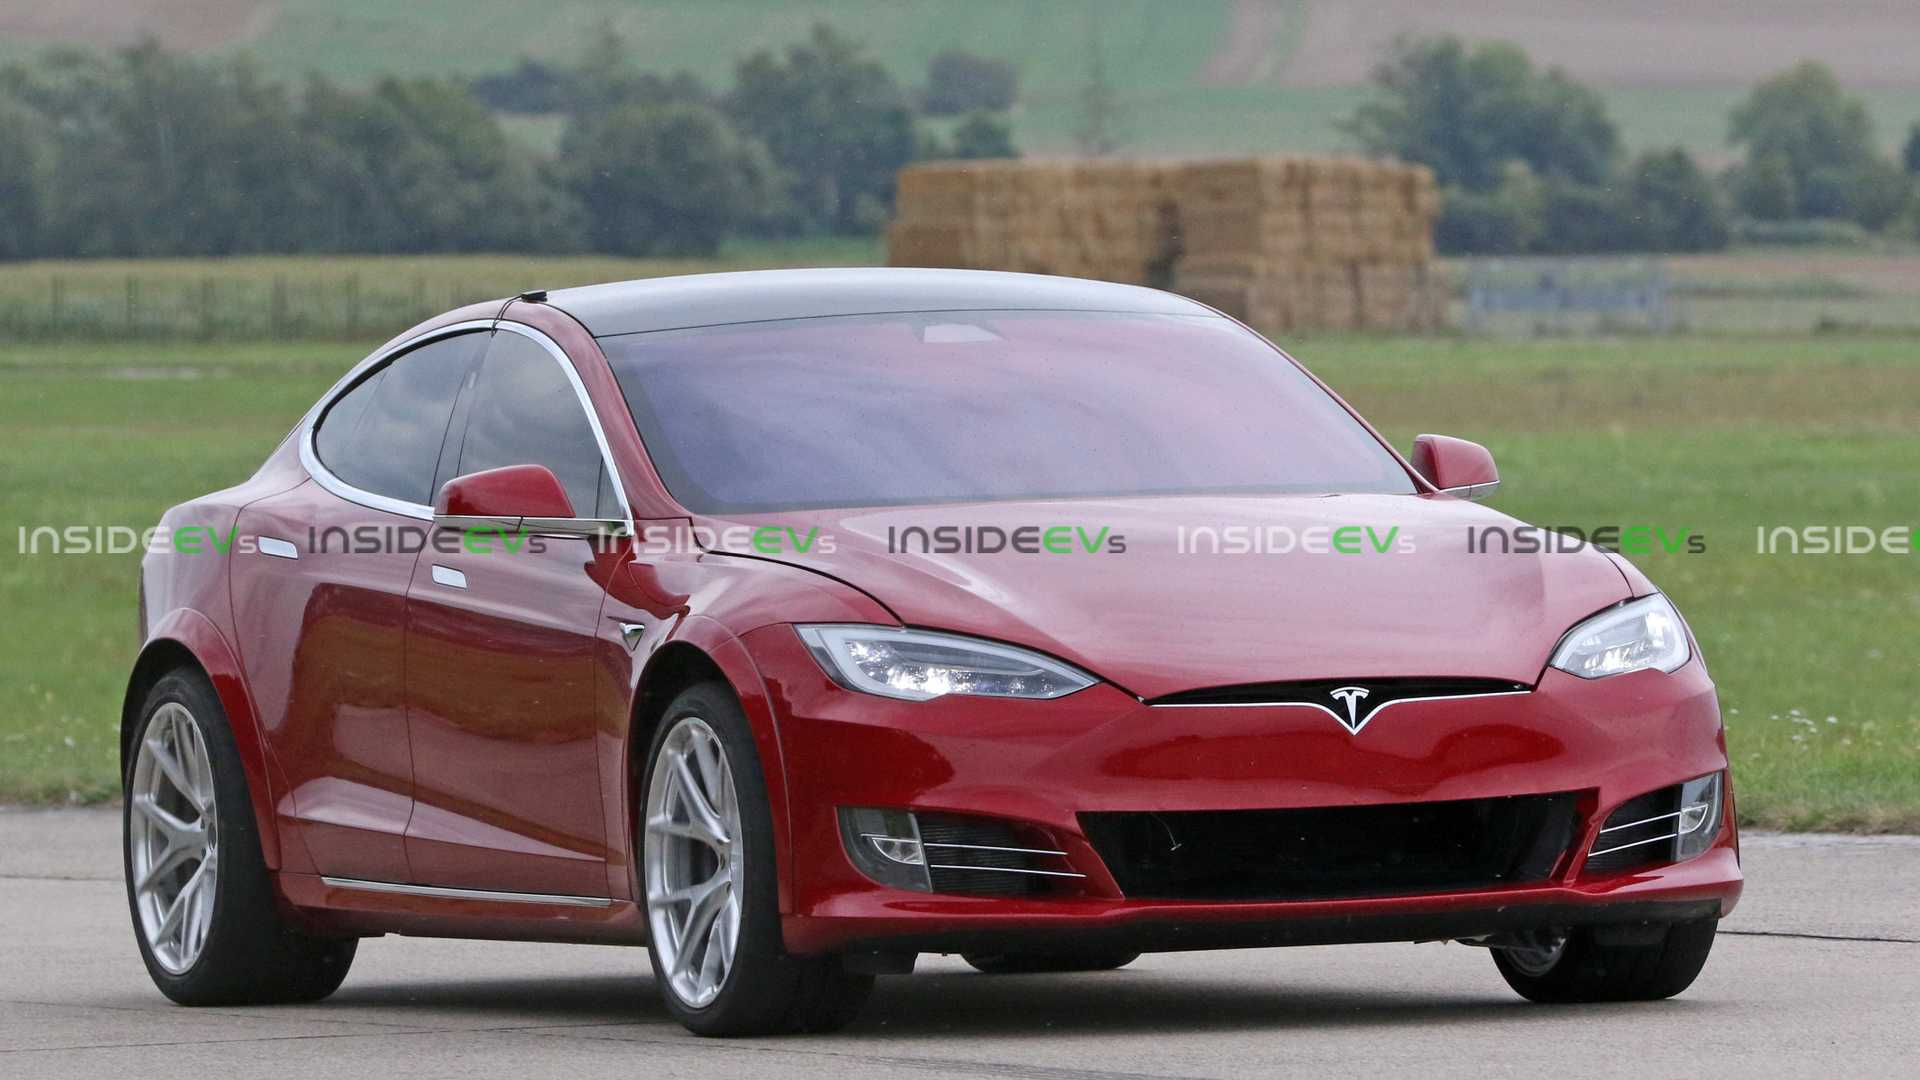 InsideEVs | Electric Vehicle News, Reviews, and Reports